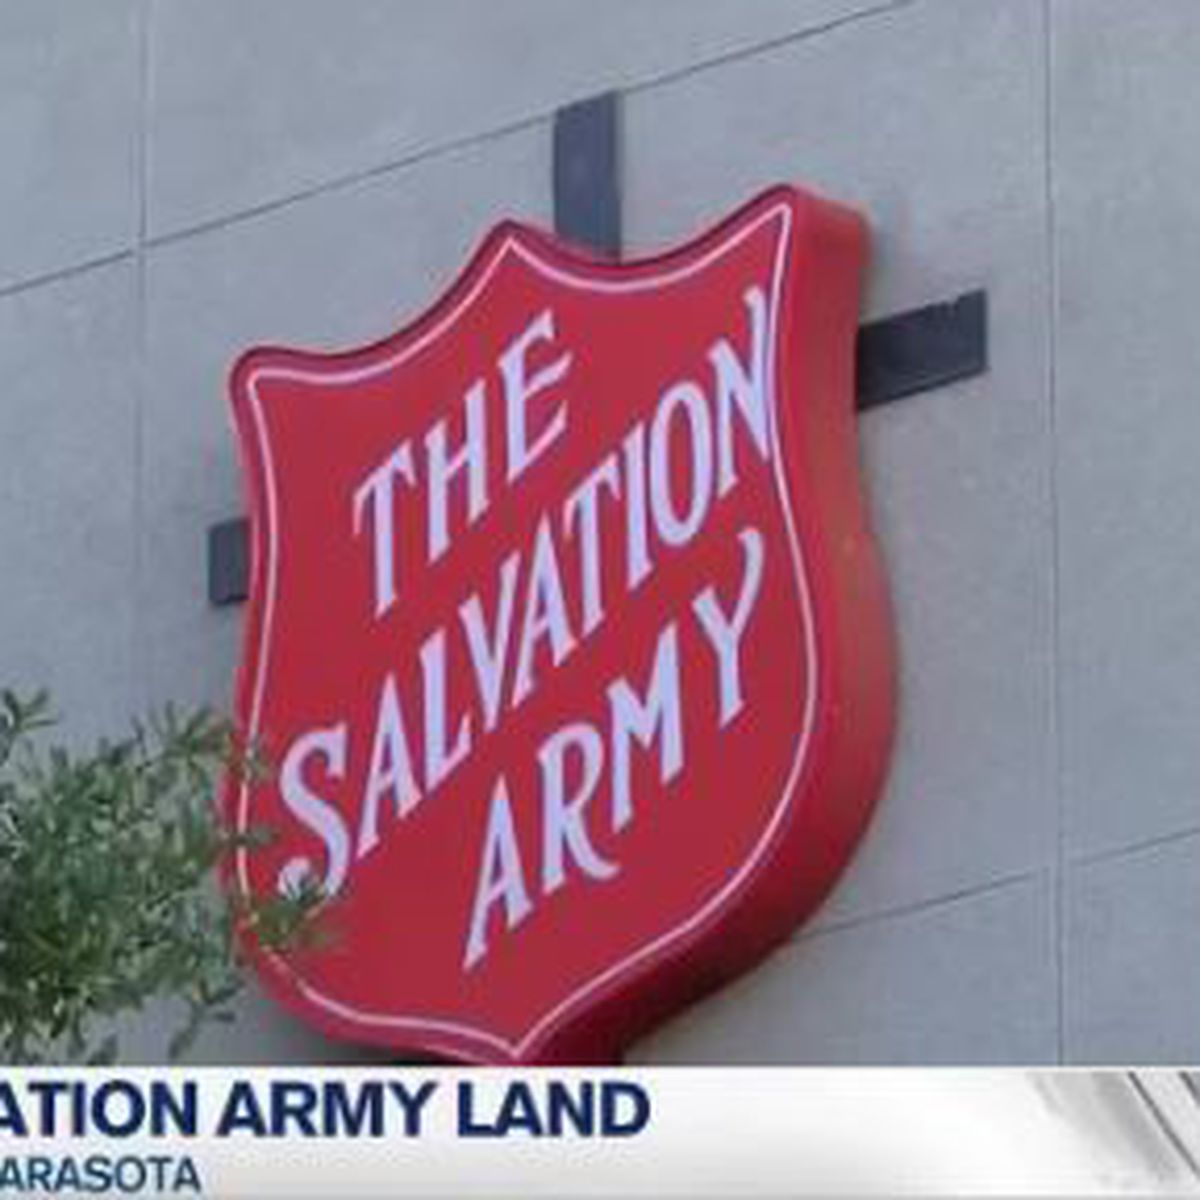 City of Sarasota votes to explore possibility of purchasing Salvation Army land on 10th Street